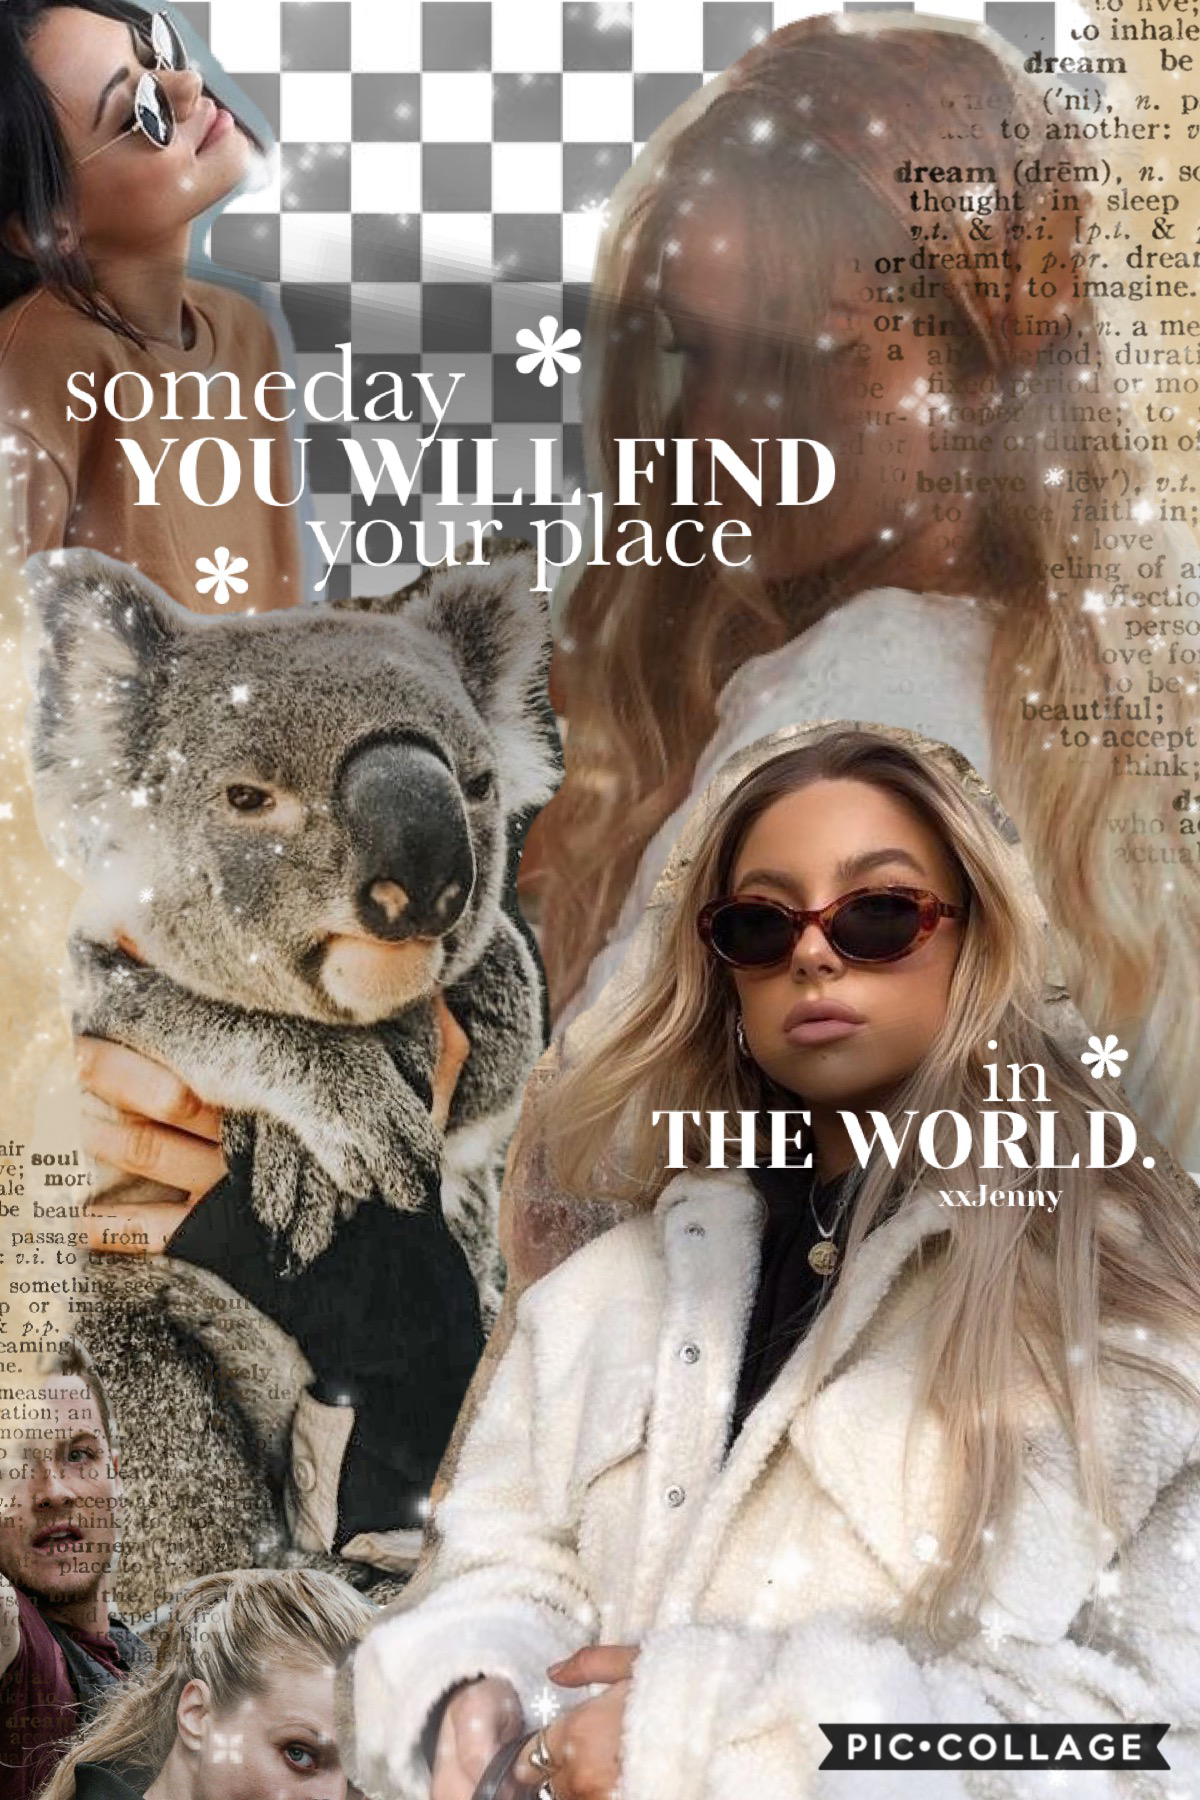 Made this a while ago and I'm still not sure if I like it. Something in me says I do and something in me says I don't 😂 Anyways I'm obsessed with mamma mia songs at the moment ❤️ it just makes me soo happy ☺️✨